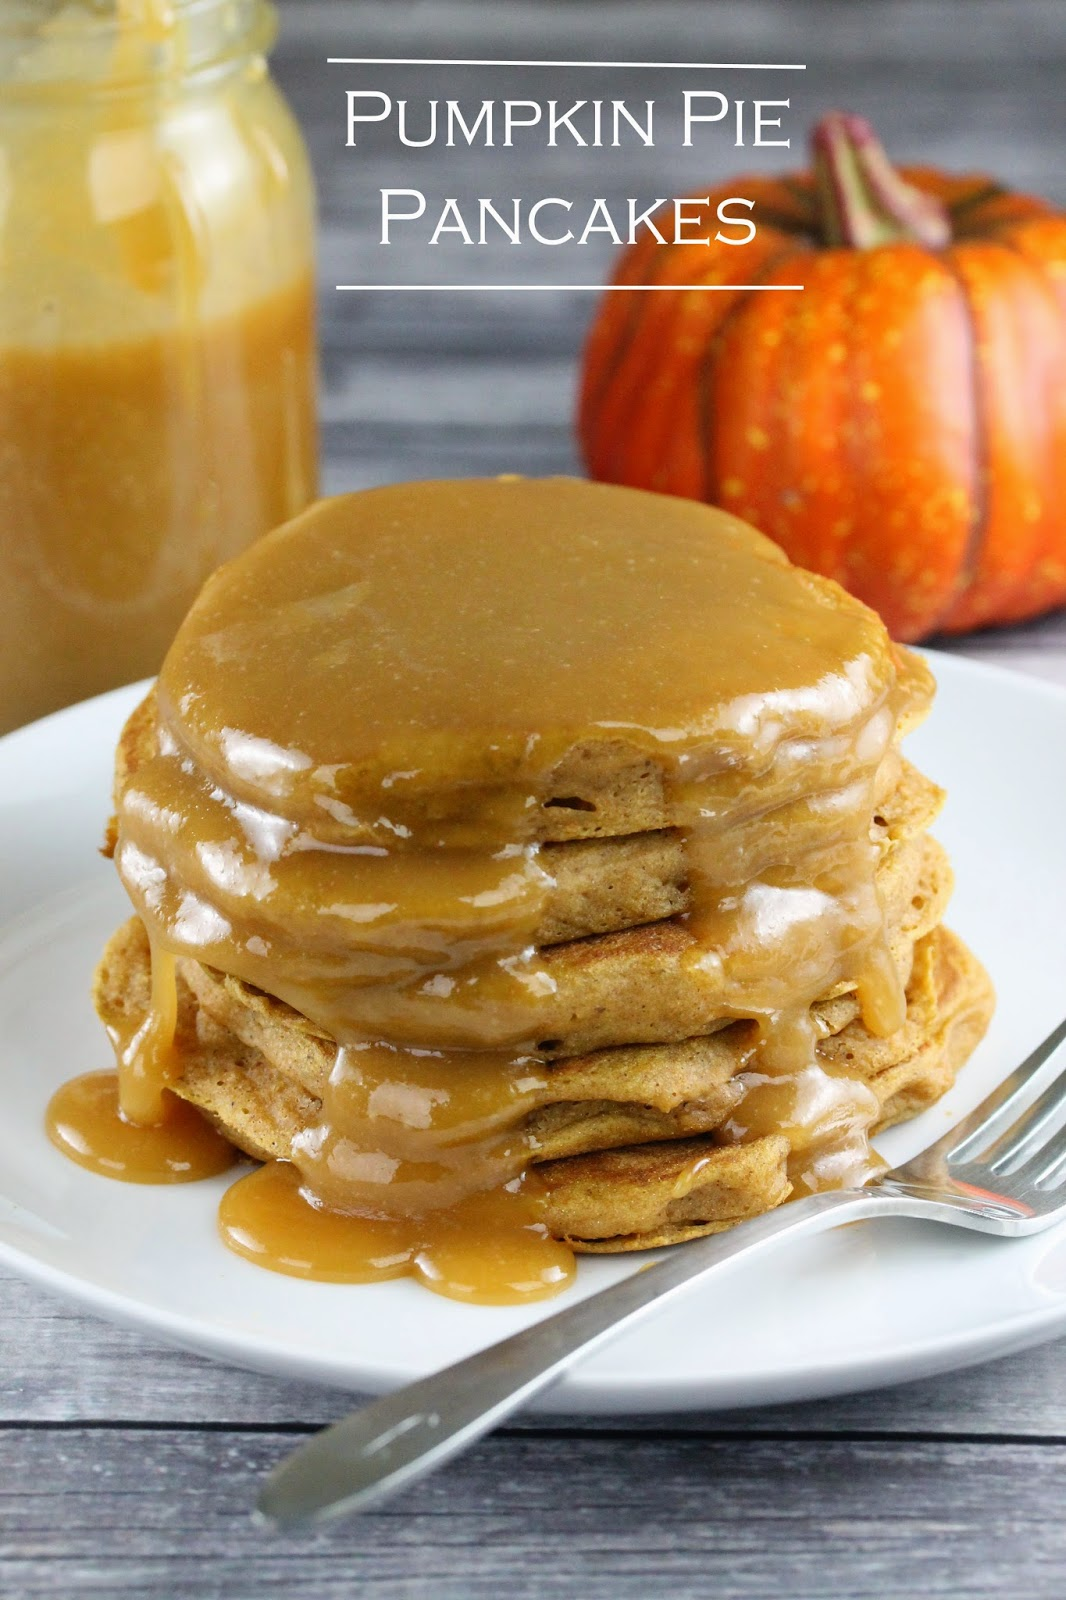 The Stay At Home Chef: Pumpkin Pie Pancakes with Caramel Syrup